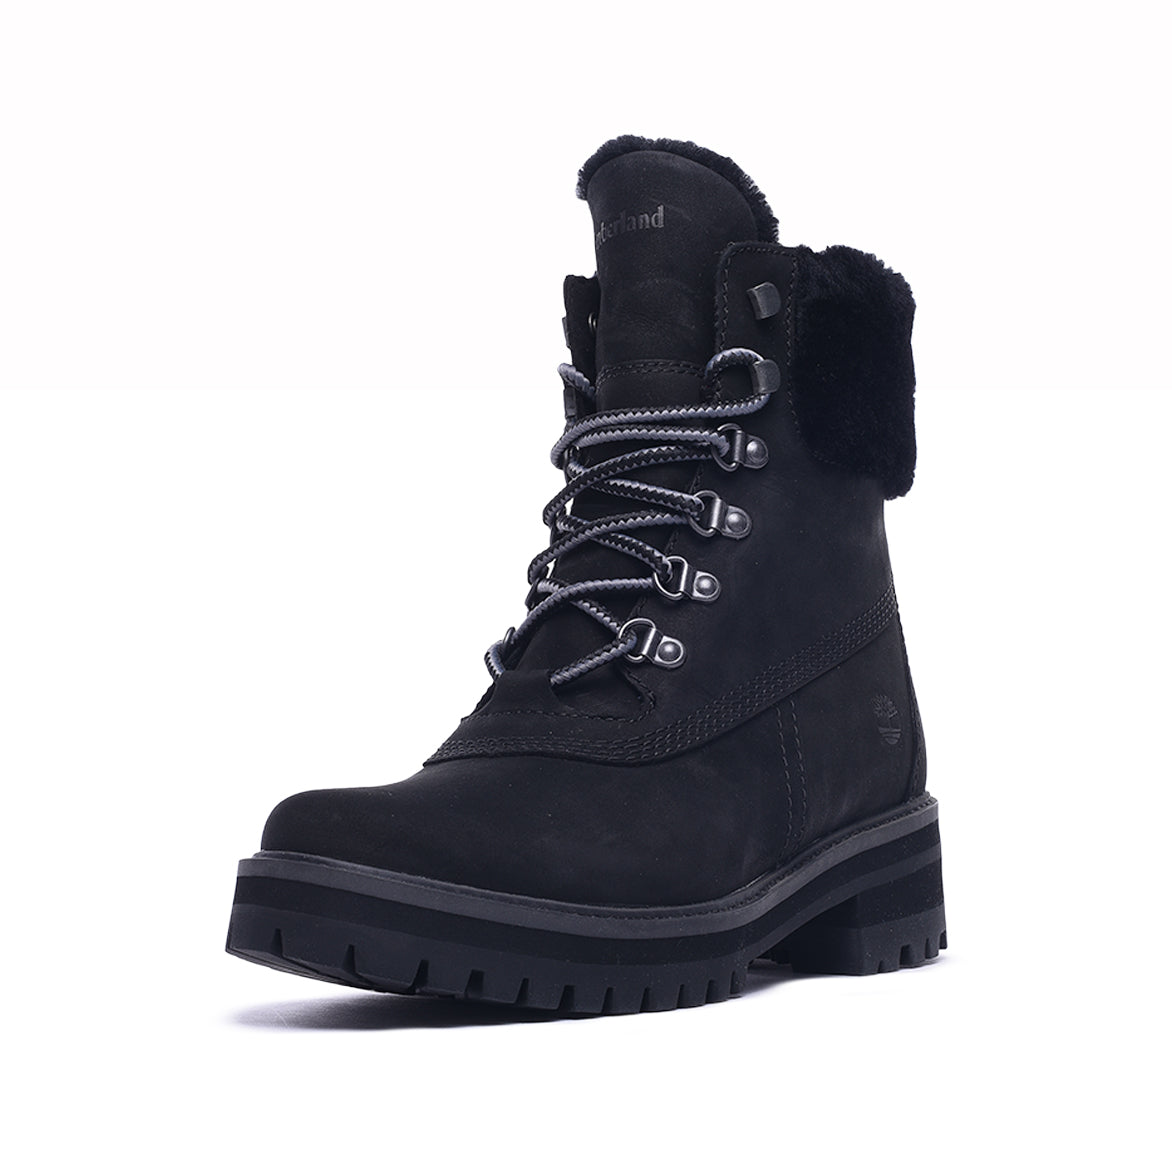 "COURMAYEUR VALLEY 6"" SHEARLING WATERPROOF BOOT - BLACK NUBUCK"